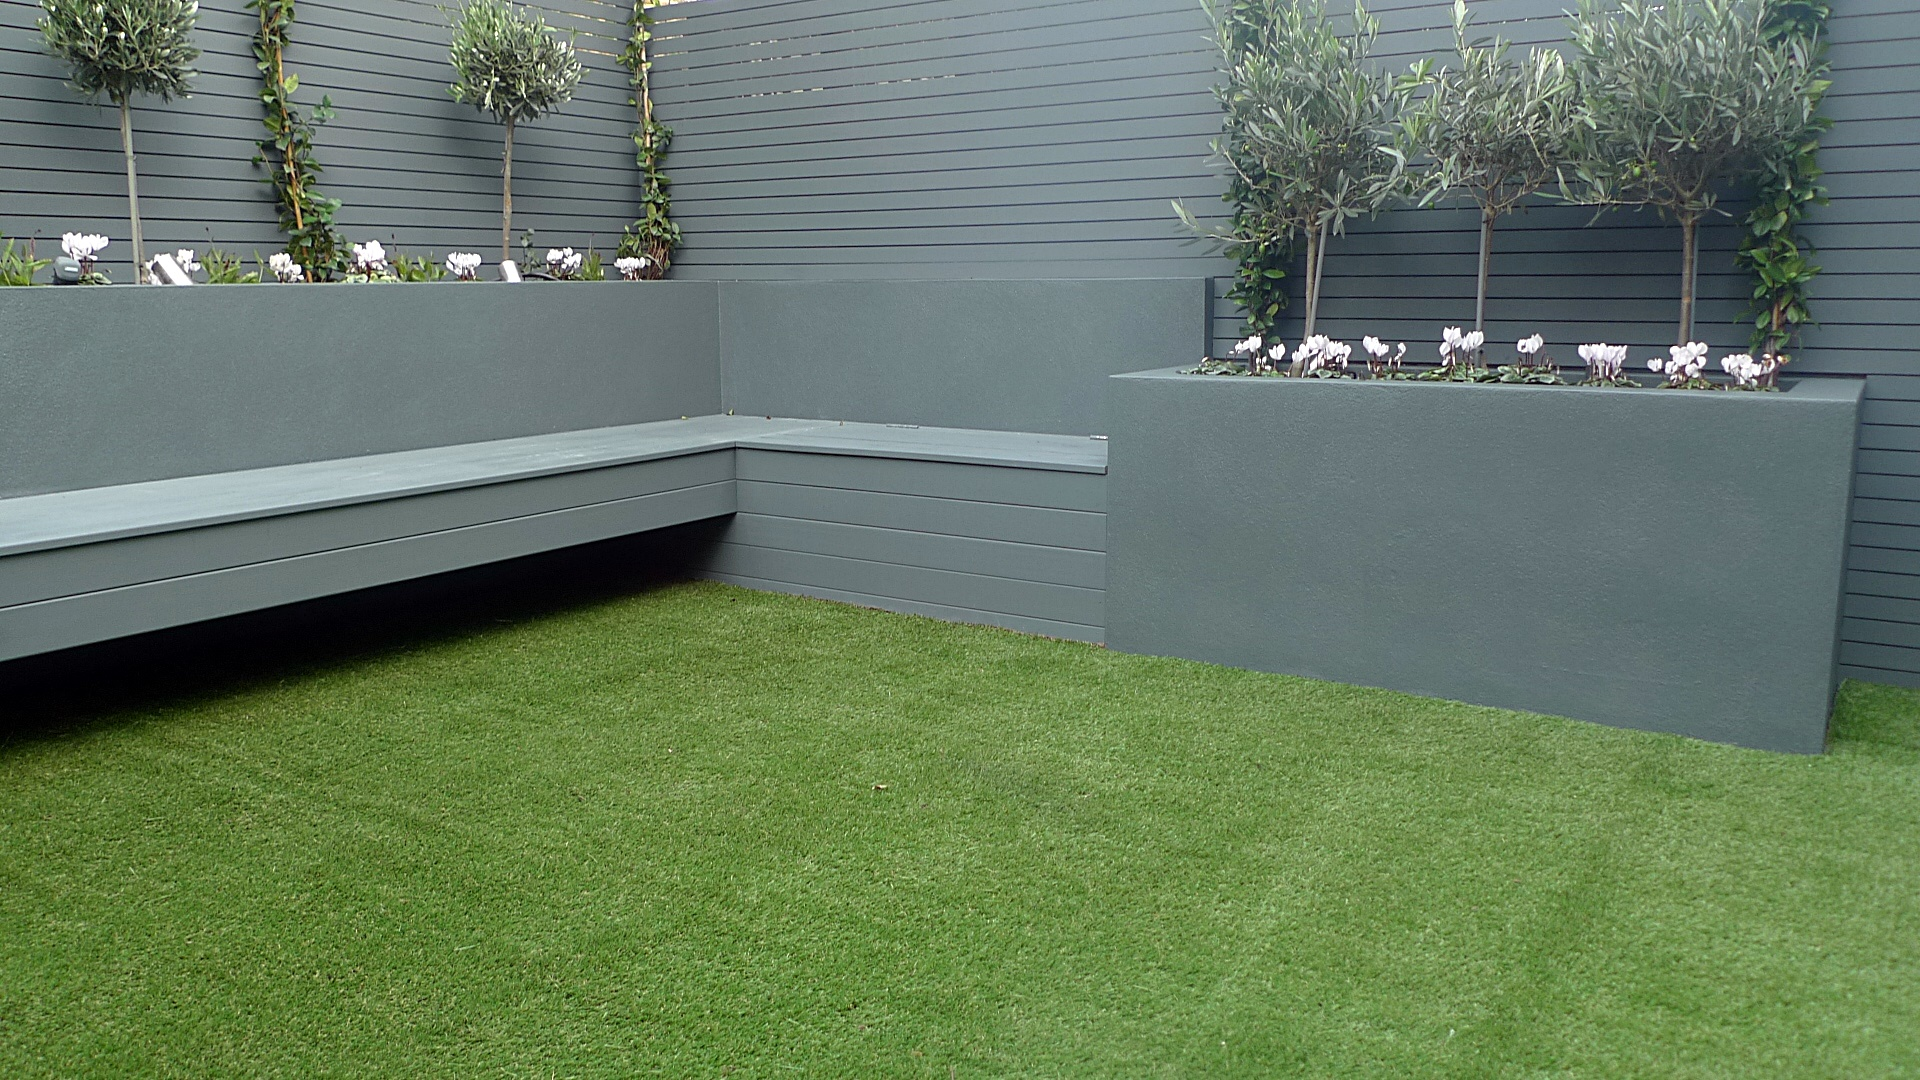 fake grass on shed roof - Google Search | Home Inspiration ...